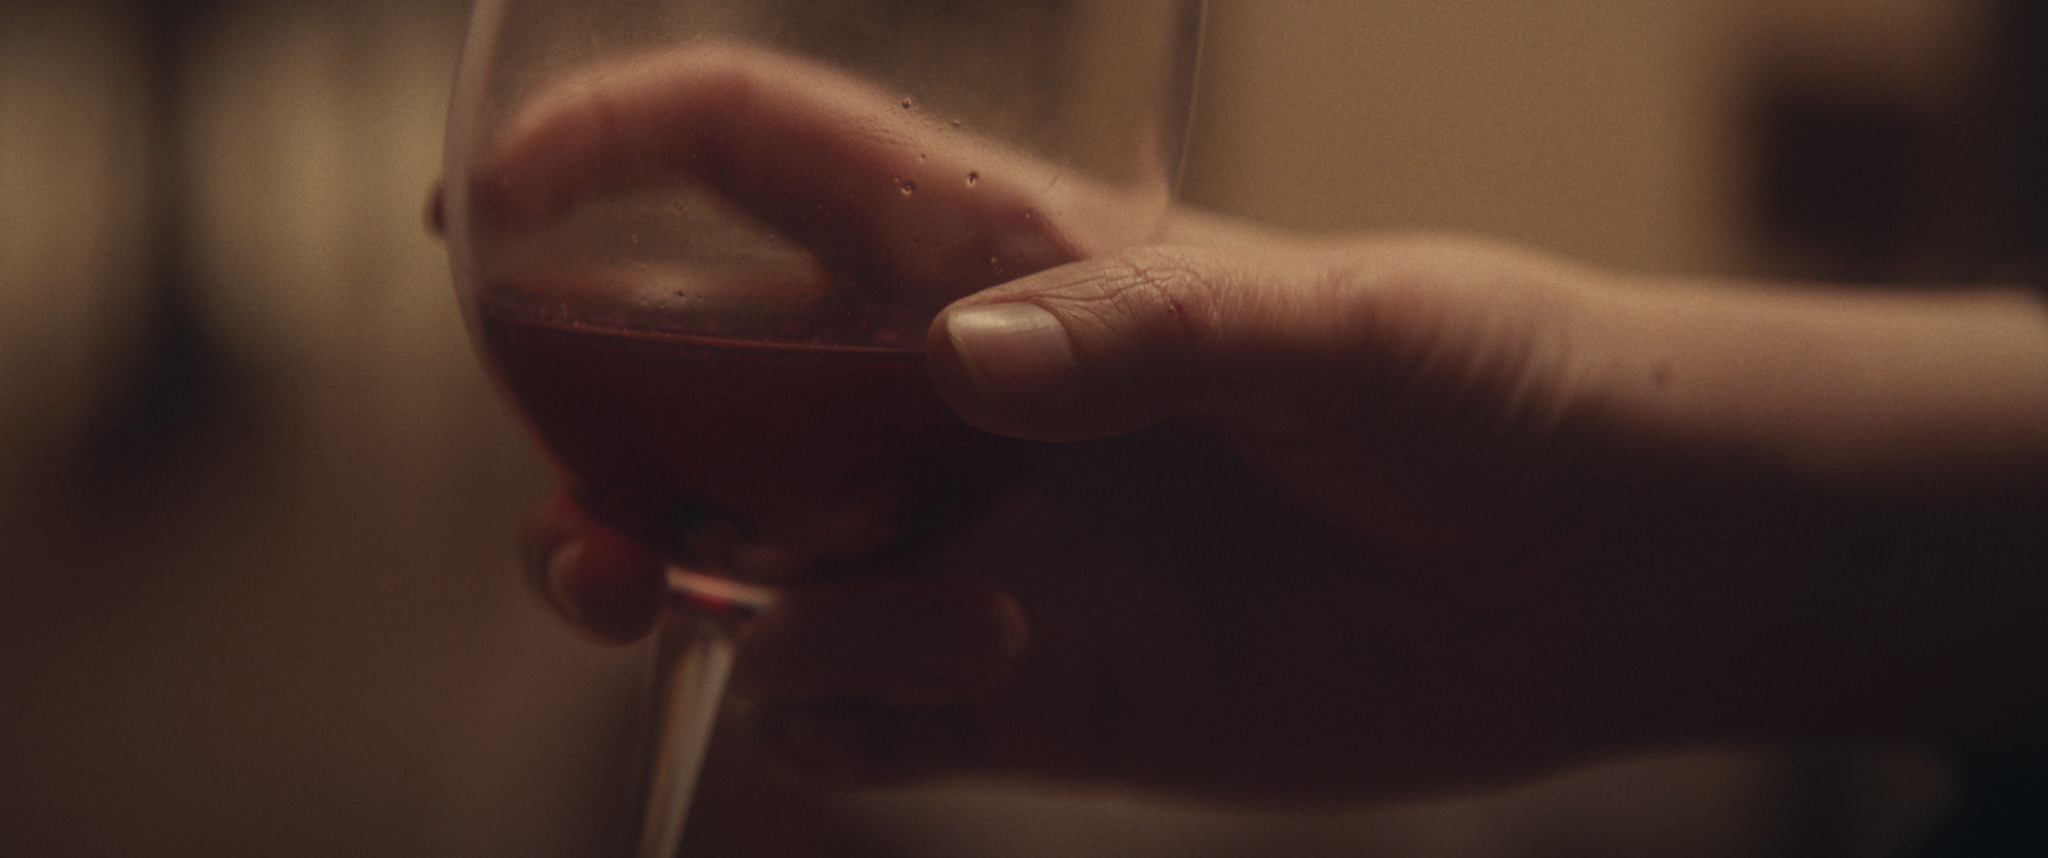 flush - hand with wine.png